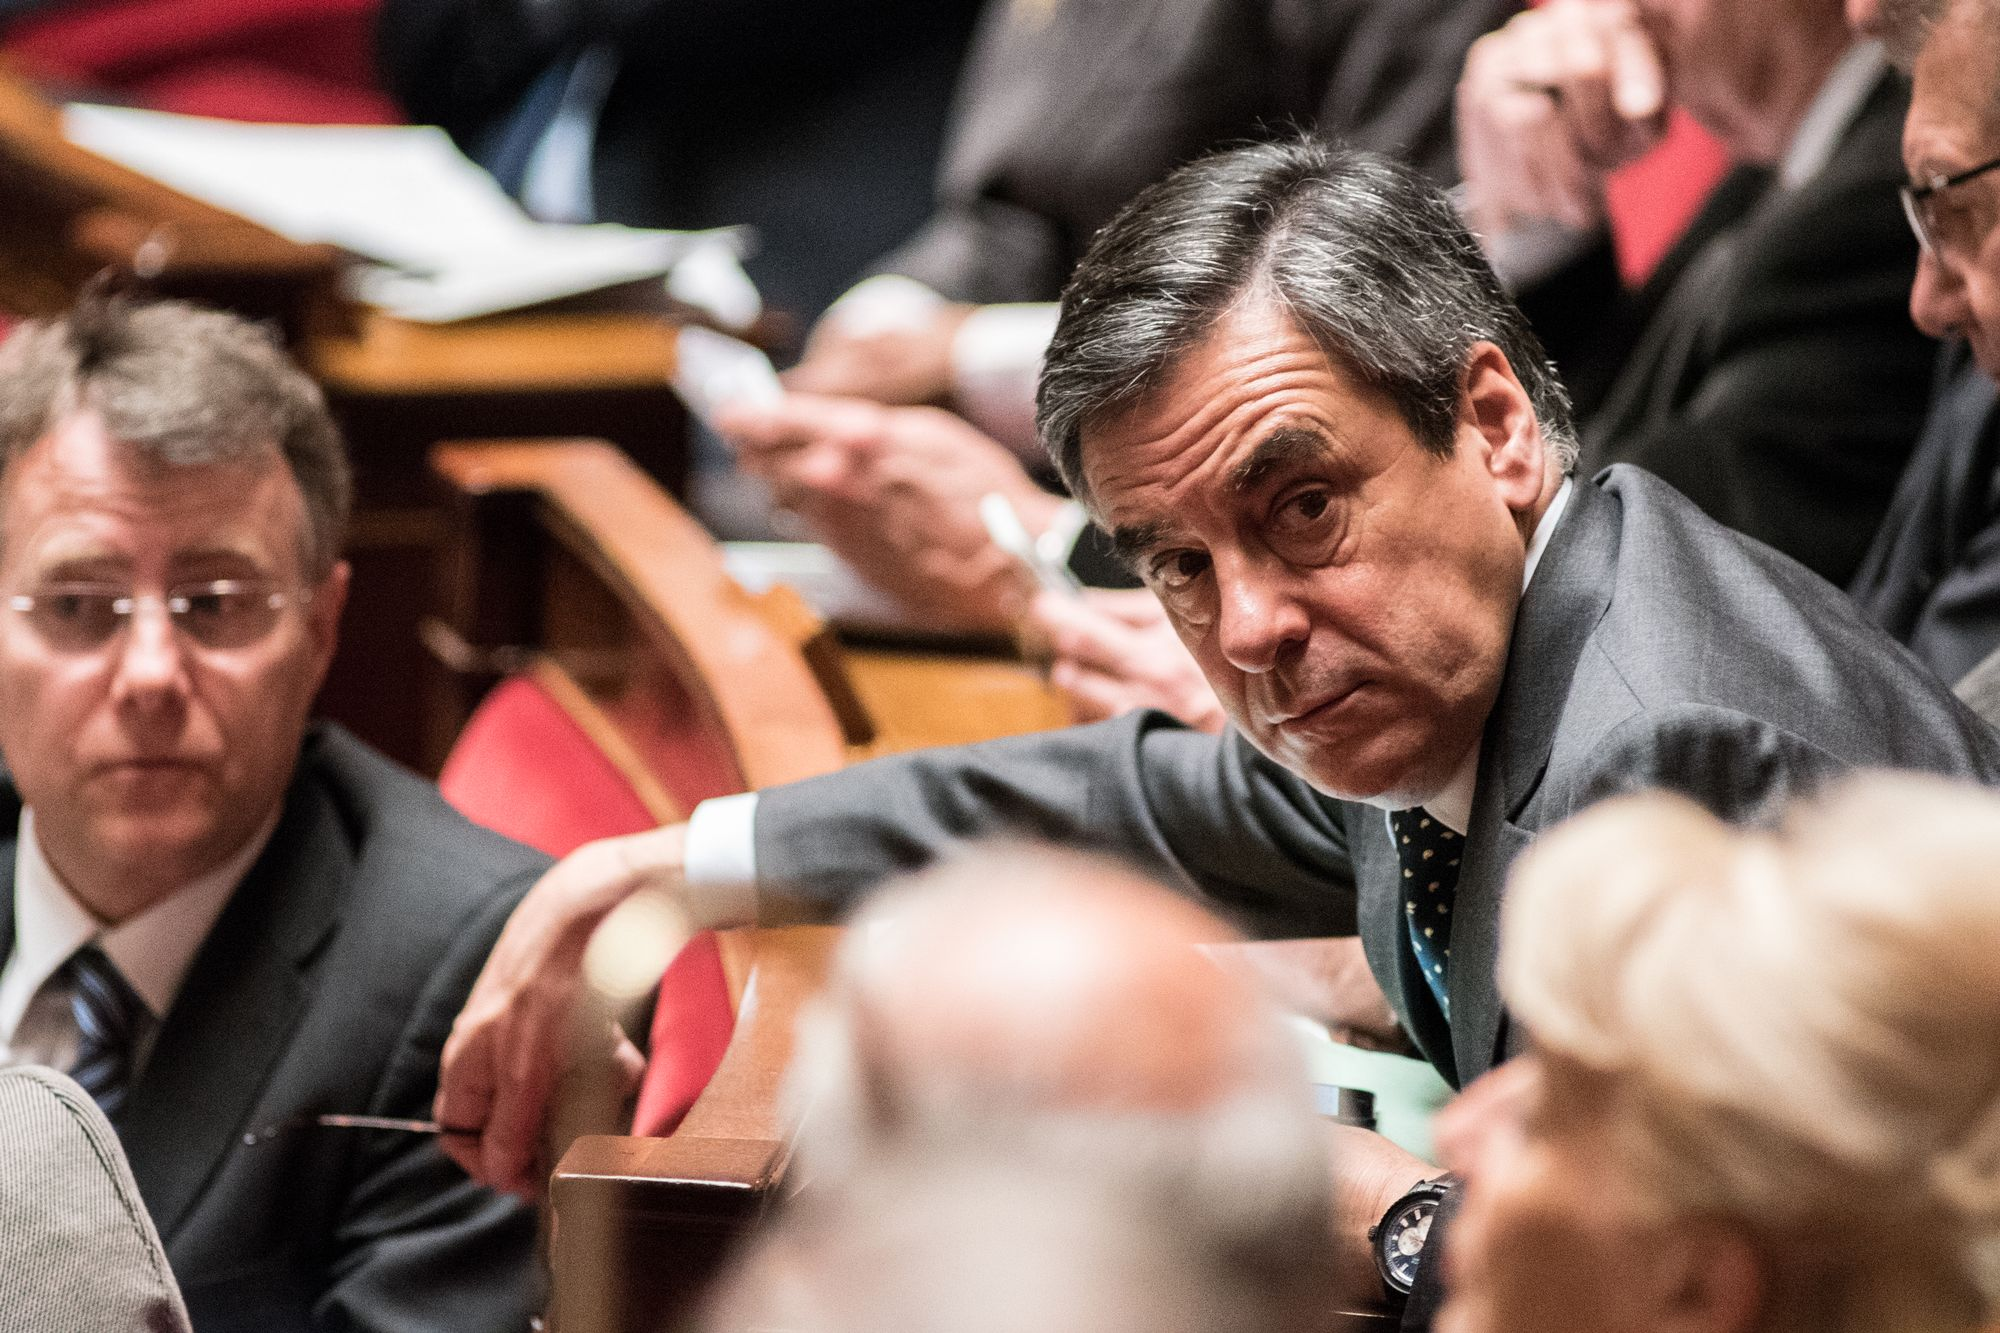 François Fillon, durant une session parlementaire à l'Assemblée nationale en avril 2016.